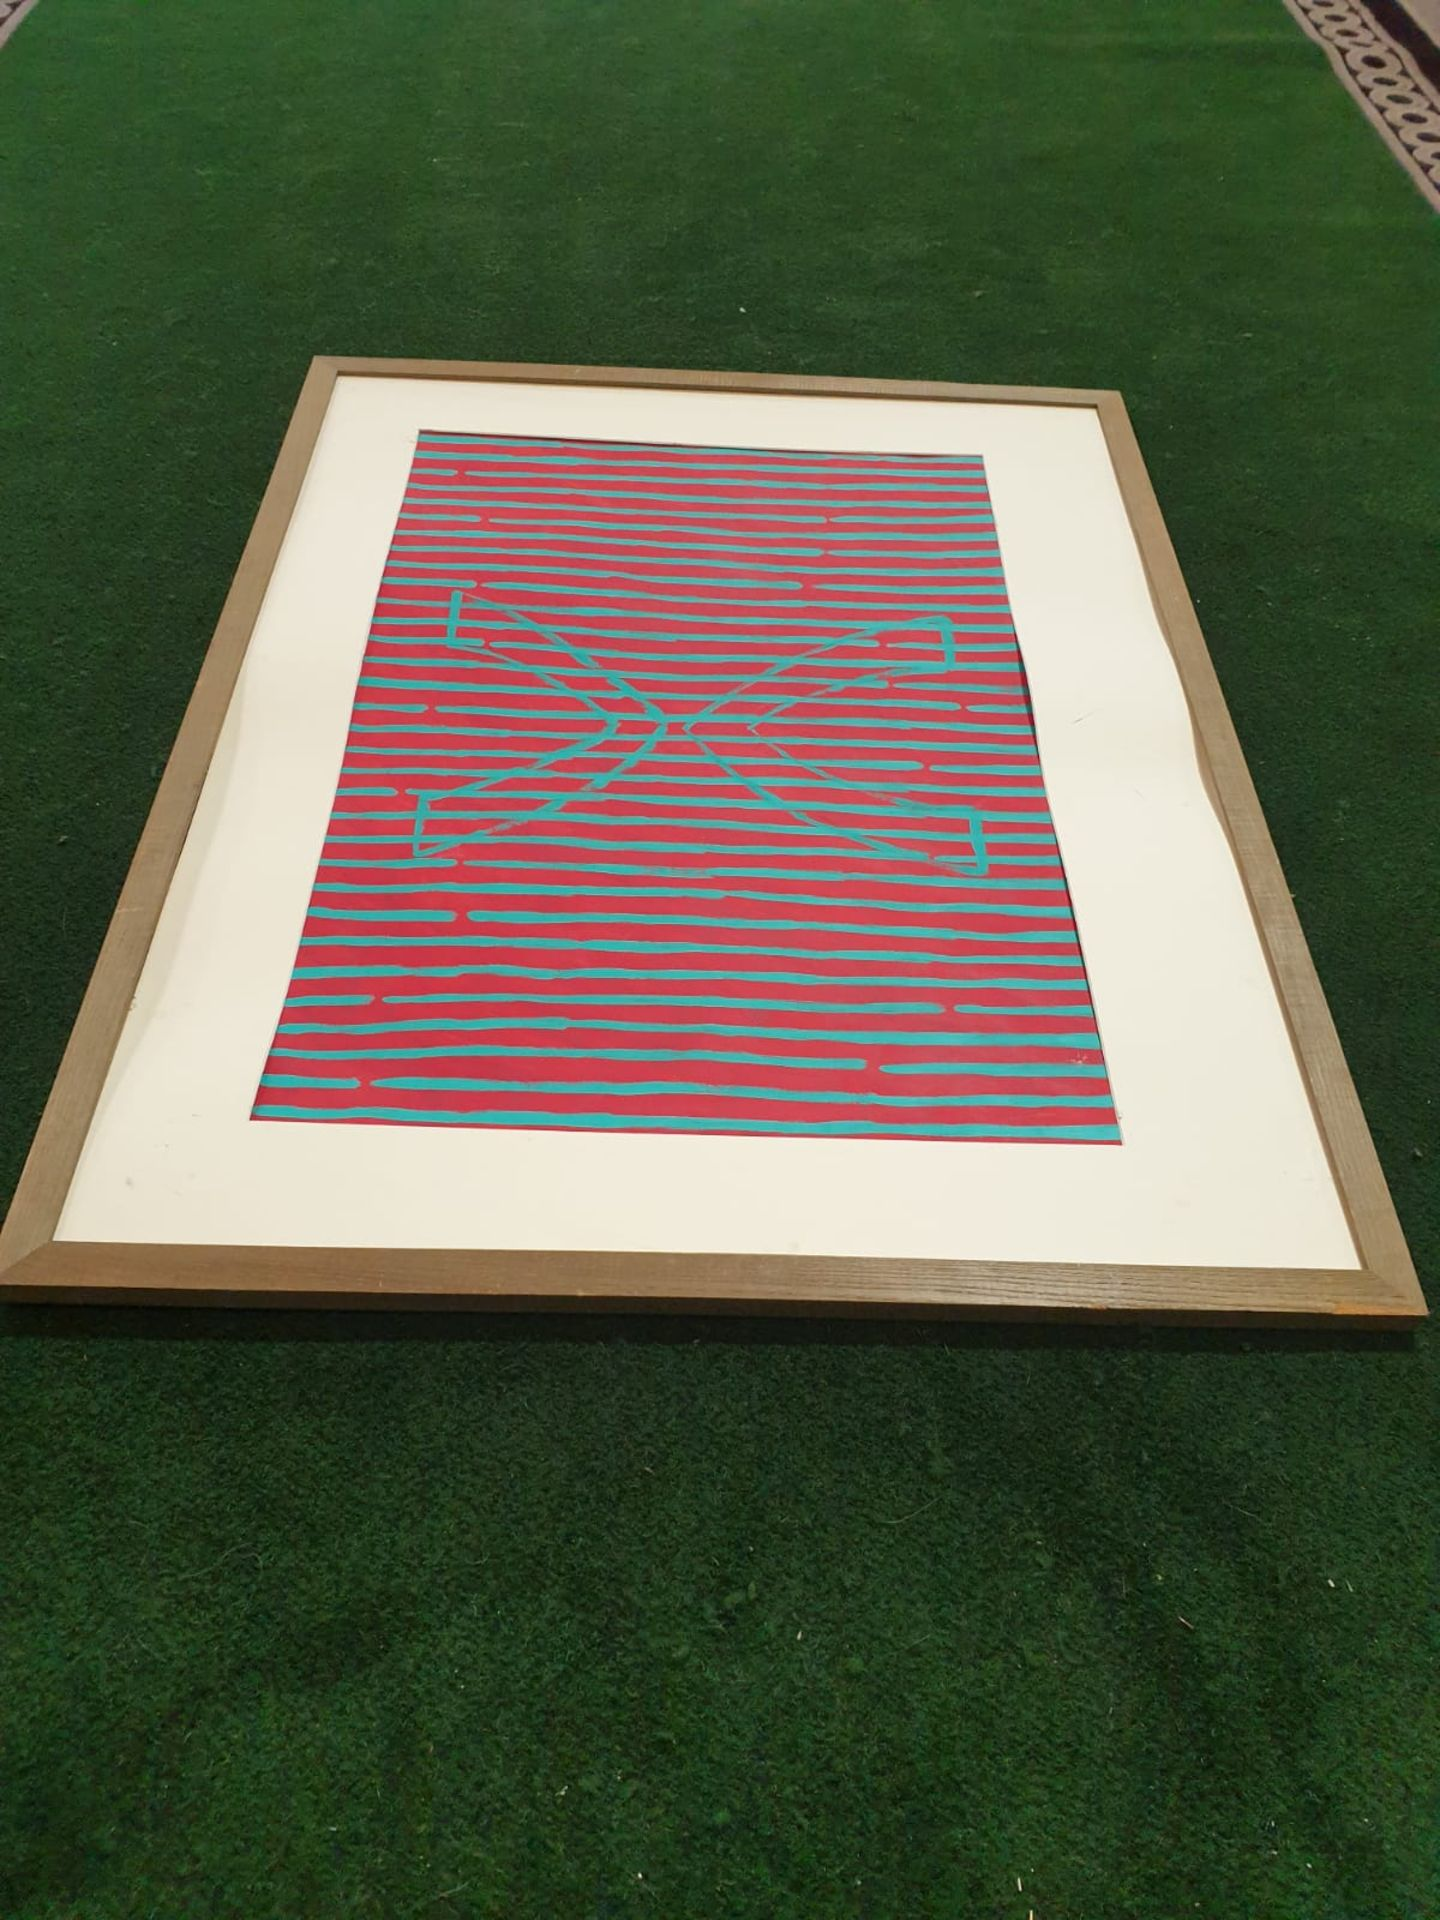 Framed without glass Modern art Red/Blue stripes. Vee and inverted Vee. Whiteford 1991 122 x 96cm